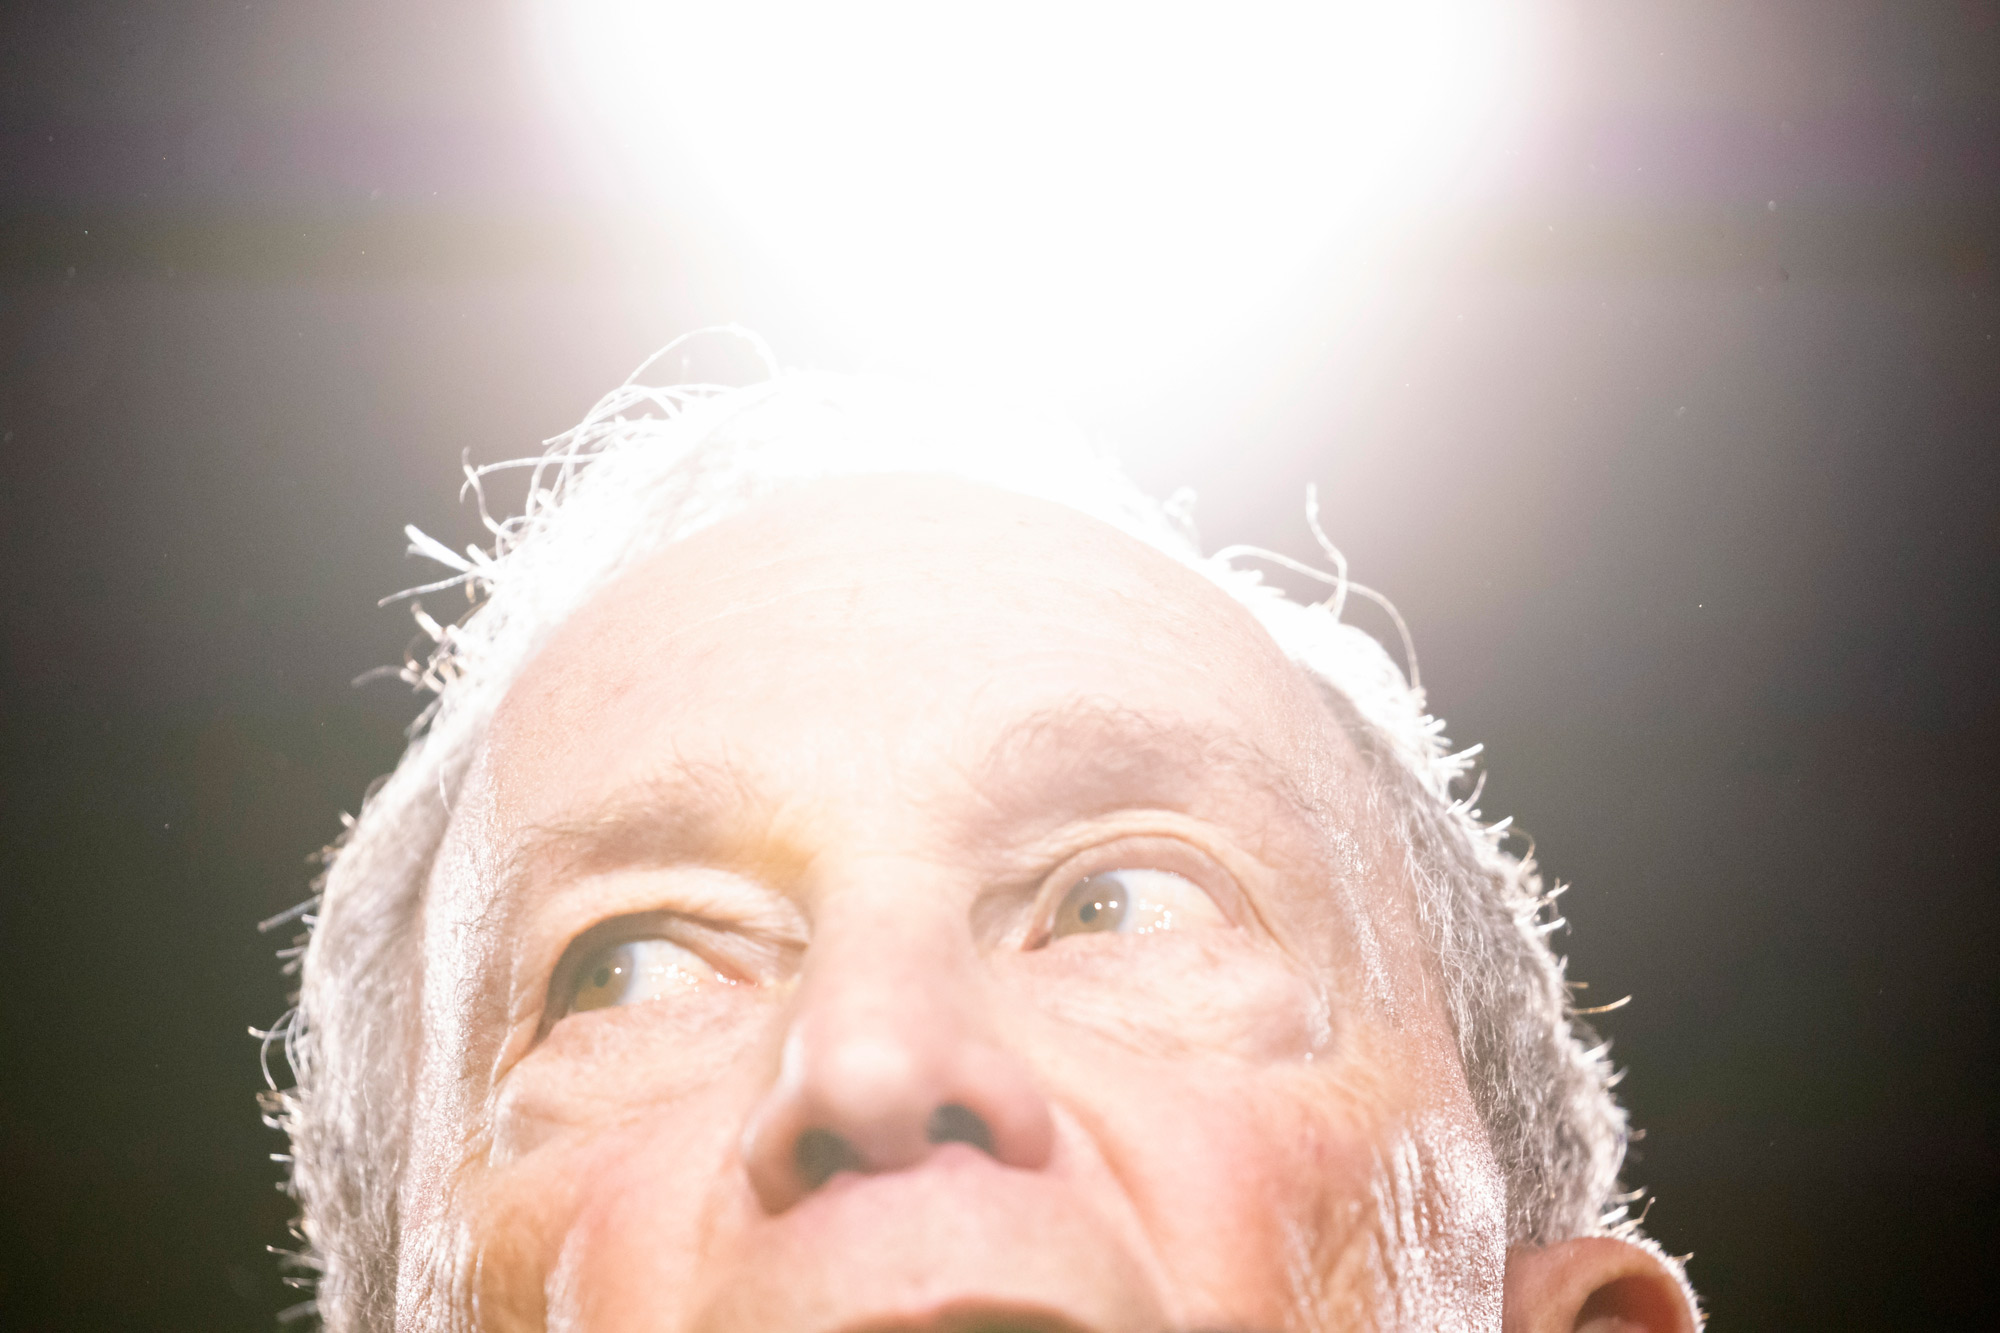 Michael Bloomberg Wants to Silence Those Who Discuss Their Past -- Including Me